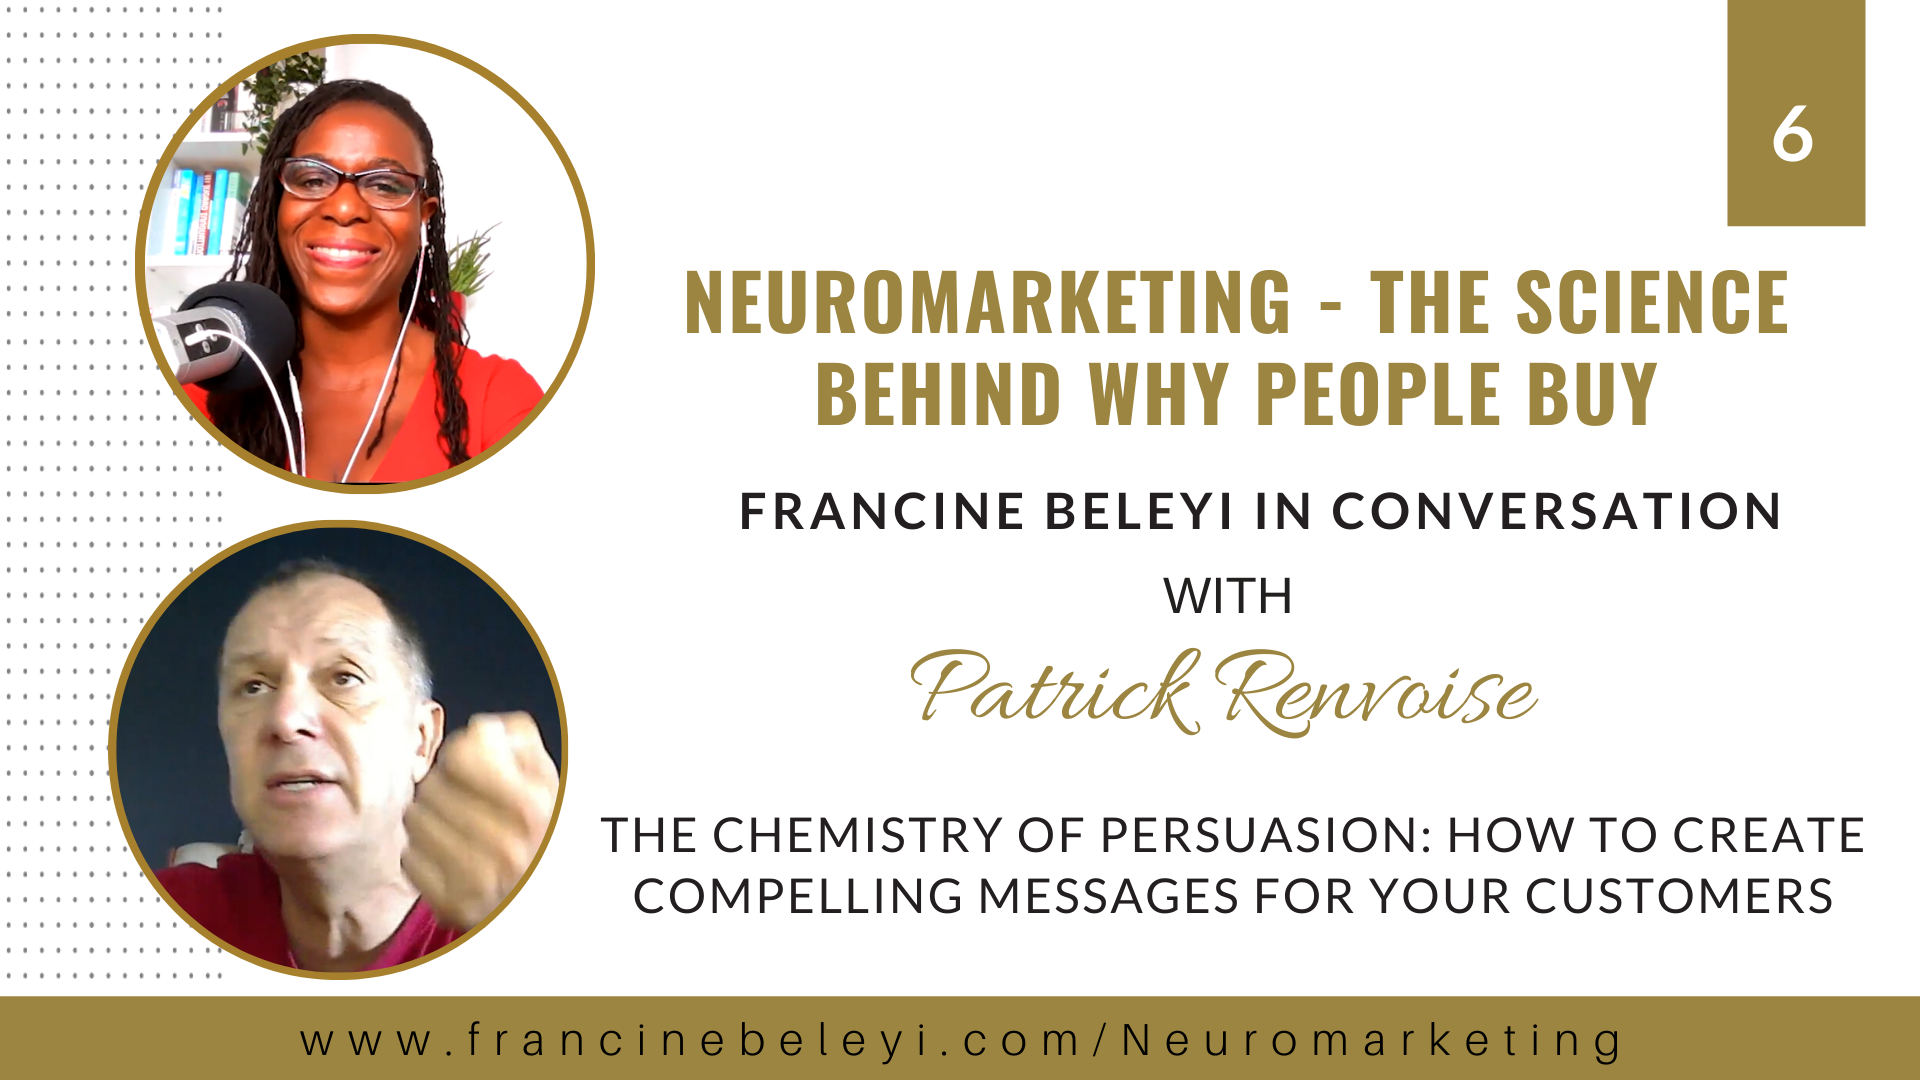 Neuromarketing Patrick Renvoise - The chemistry of persuasionwith Francine Beleyi